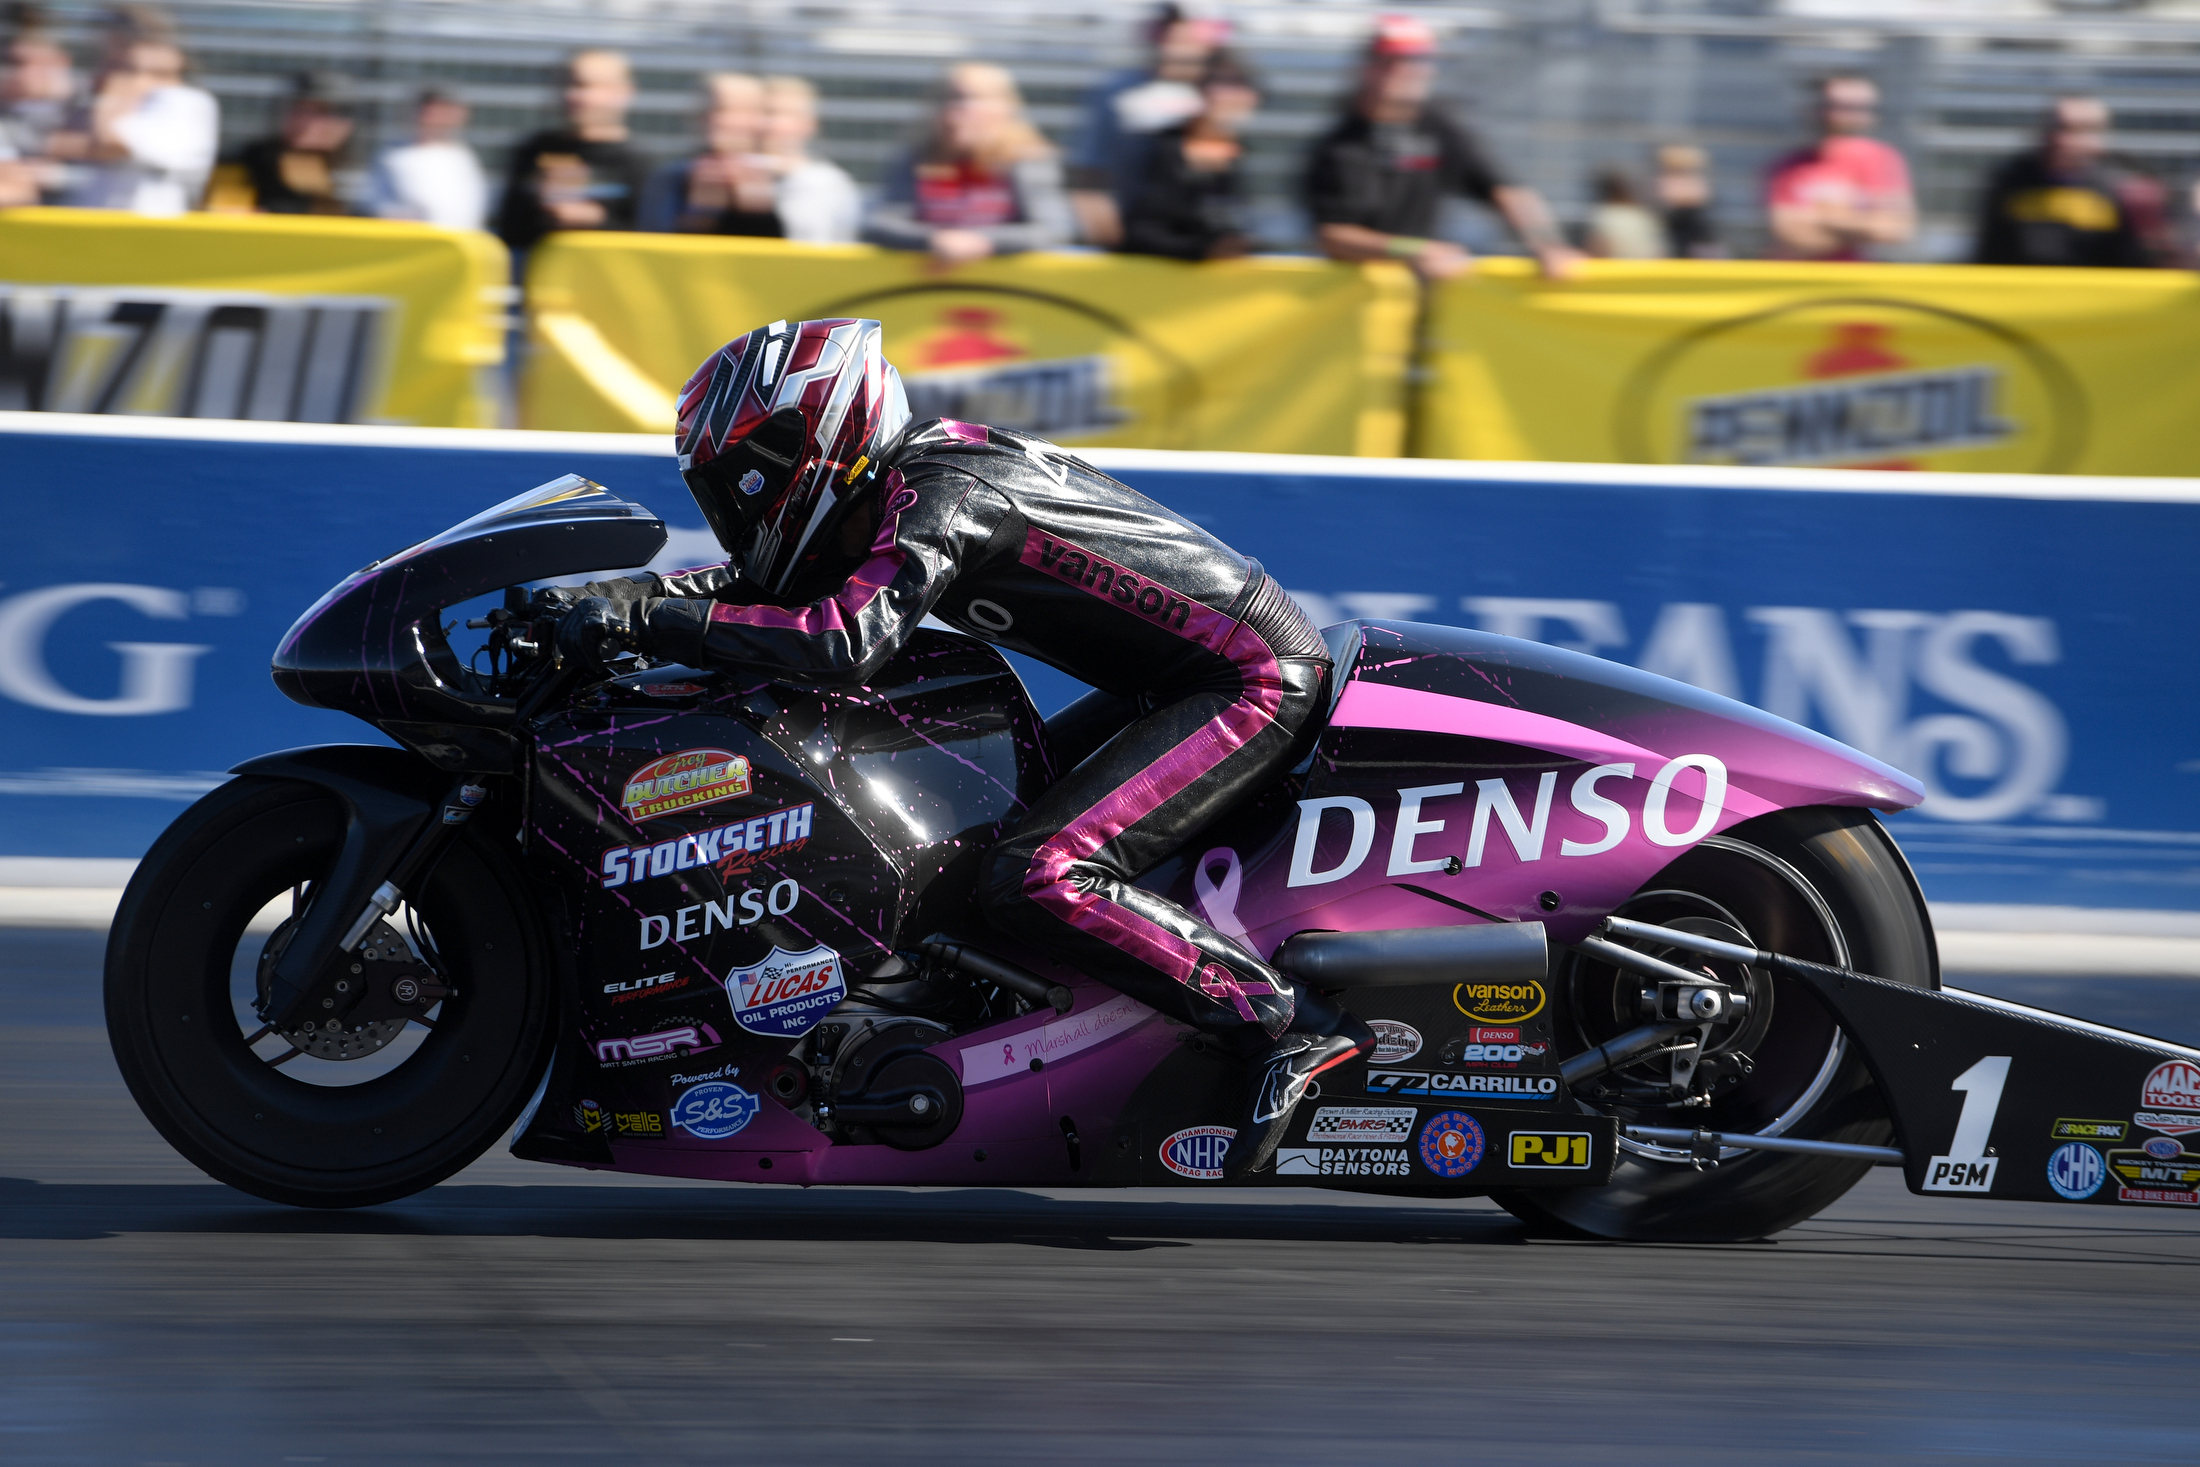 Denso Pro Stock Motorcycle rider Matt Smith racing on Friday at the Dodge NHRA Nationals presented by Pennzoil